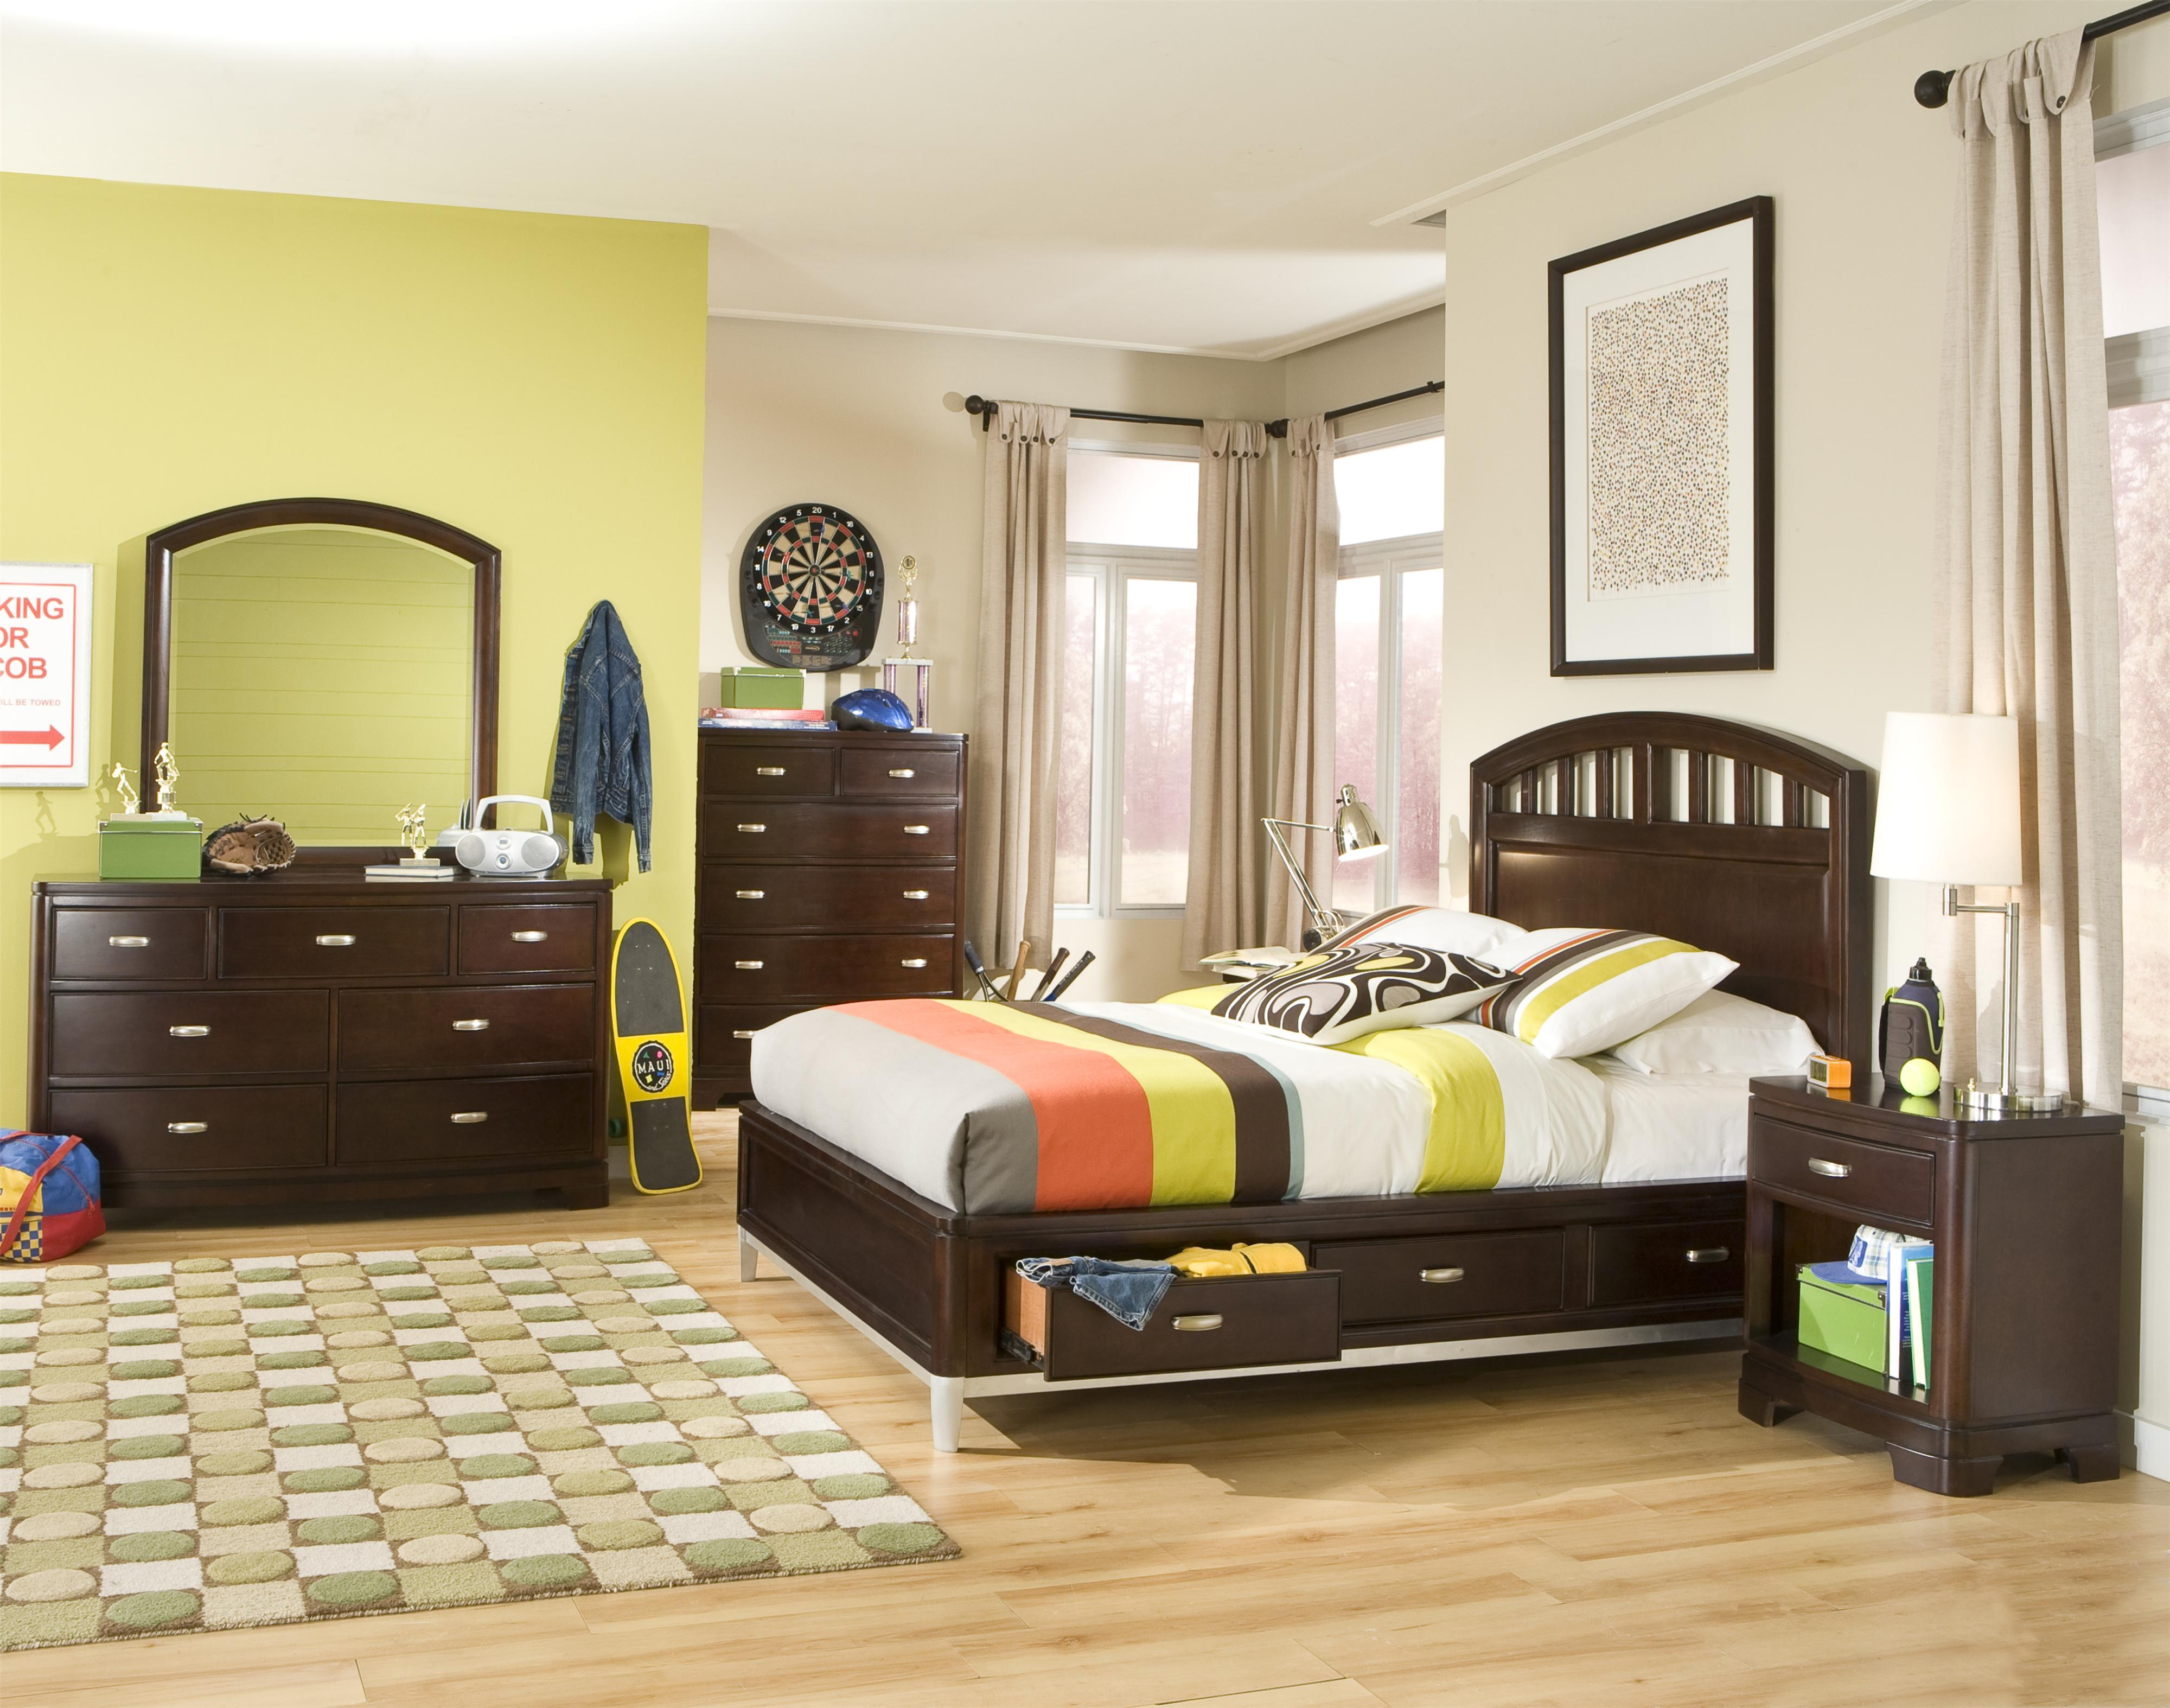 Legacy Classic Kids Park City Full Bedroom Group - Item Number: 9980 F Bedroom Group 2